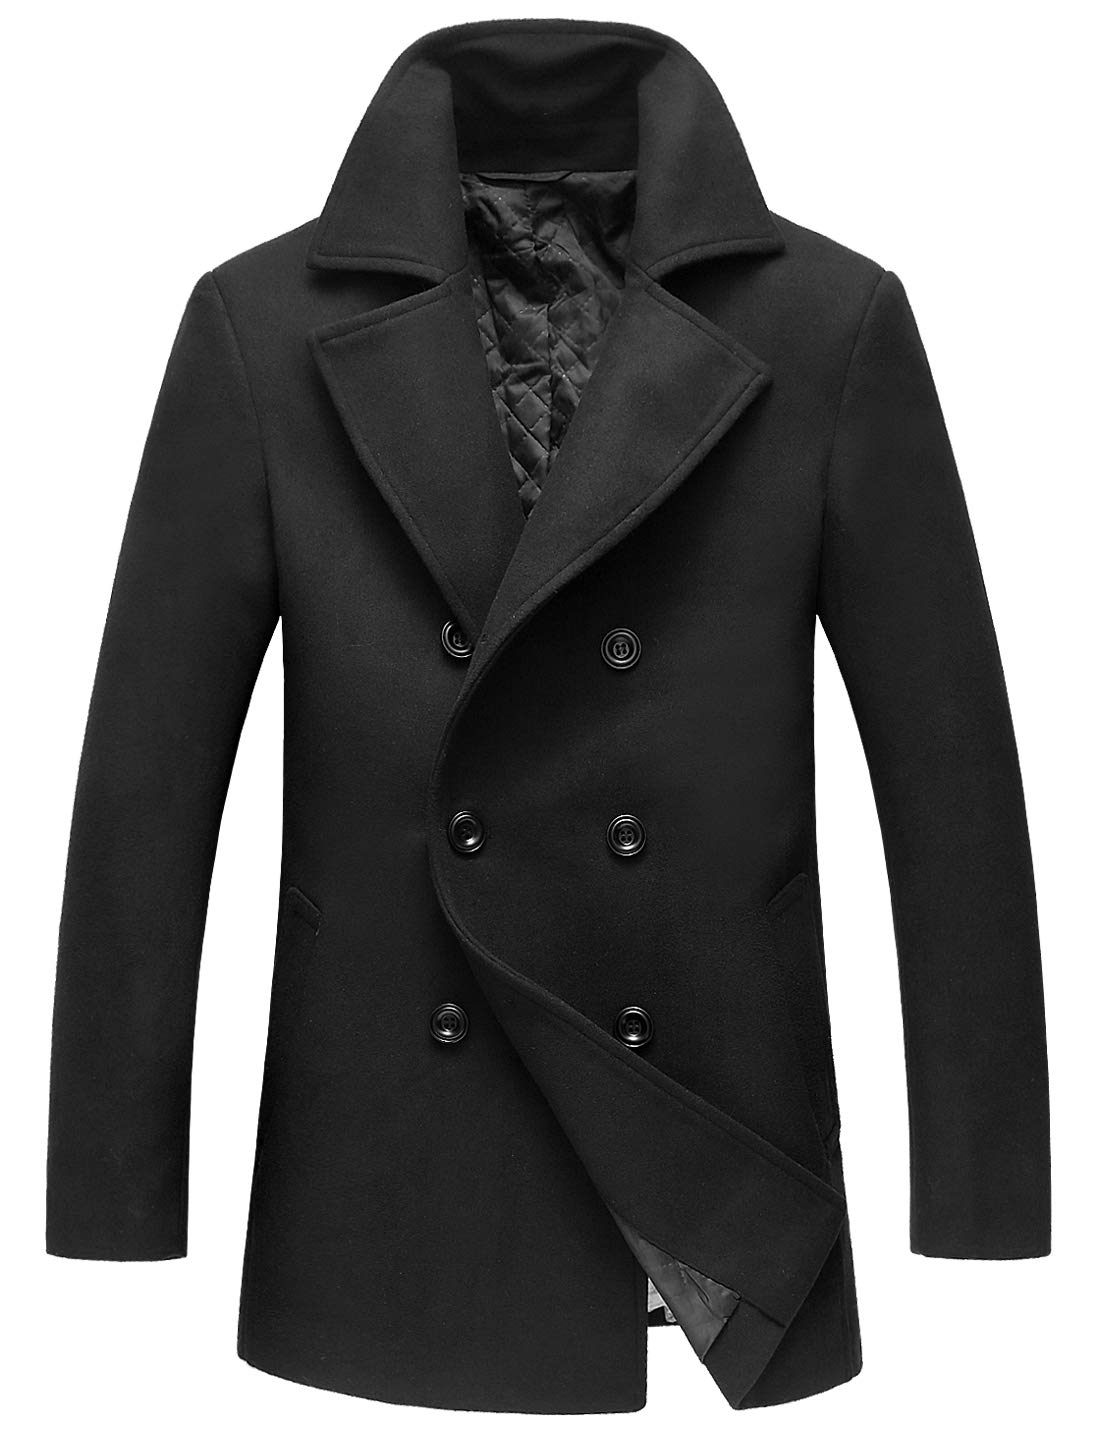 chouyatou Men's Classic Notched Collar Double Breasted Wool Blend Pea Coat (Large, Black) by chouyatou